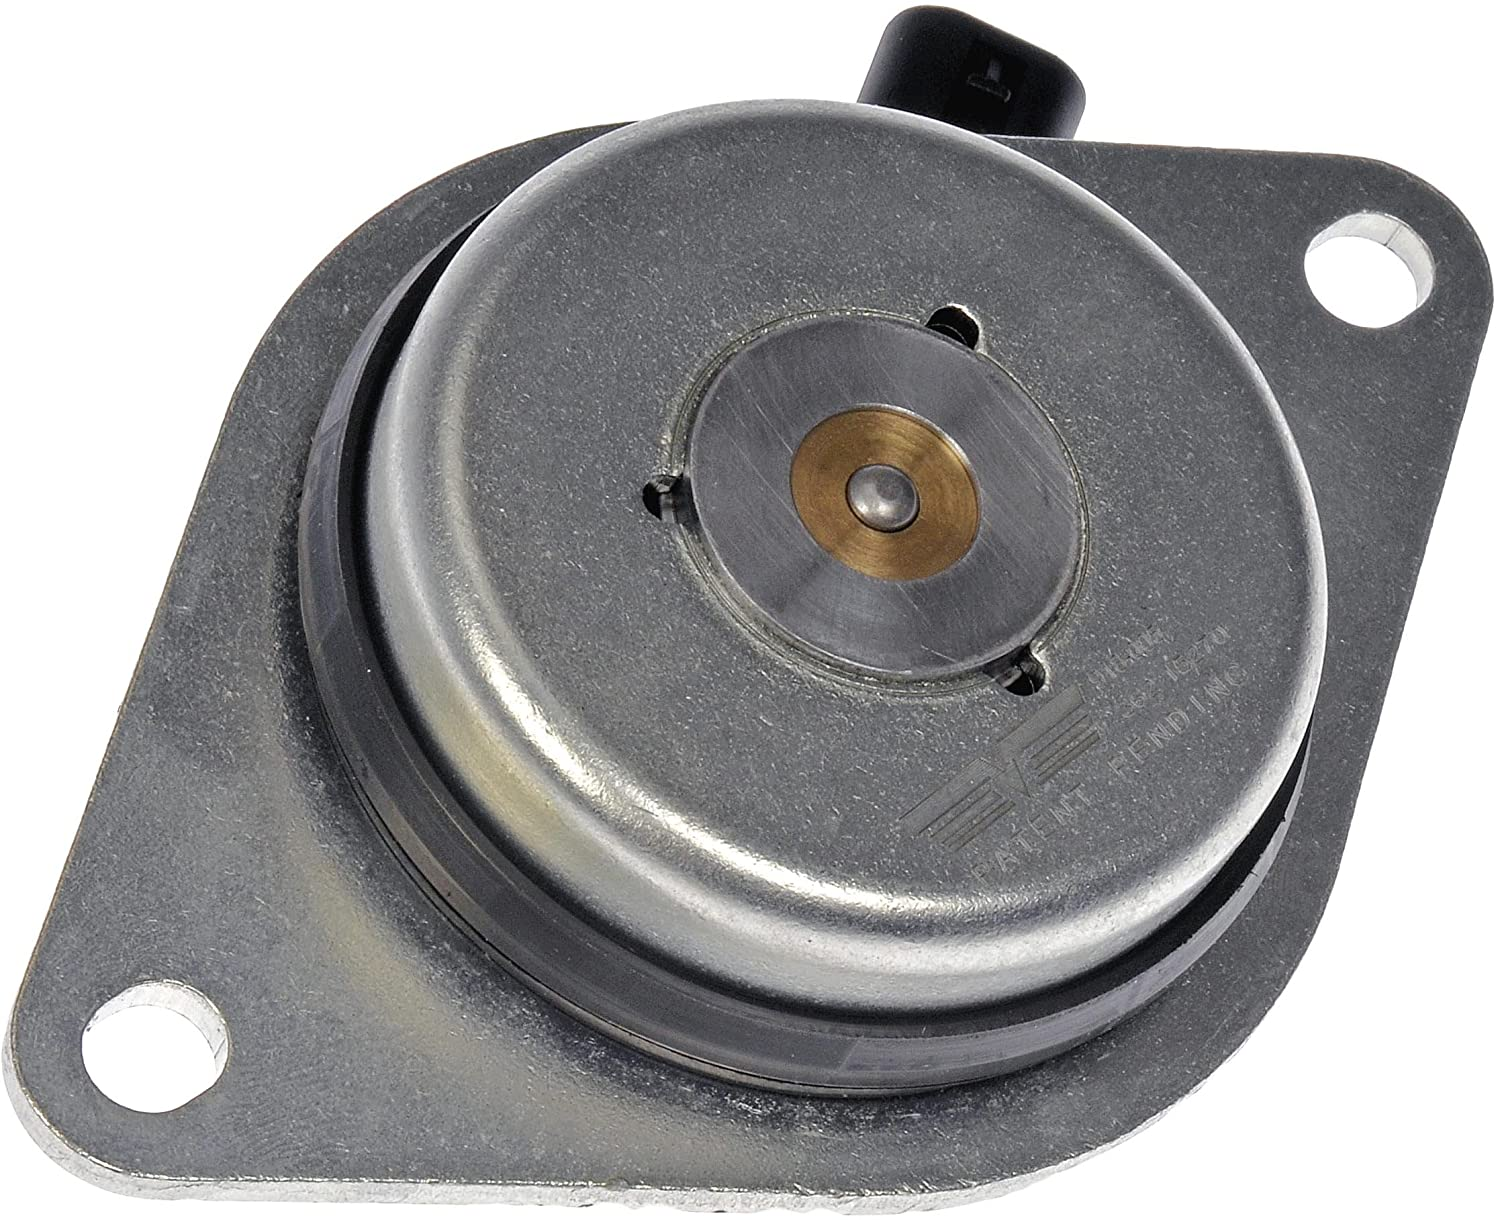 Dorman 918-005 Engine Variable Valve Timing (VVT) Solenoid for Select Buick / Cadillac / Chevrolet Models (OE FIX)